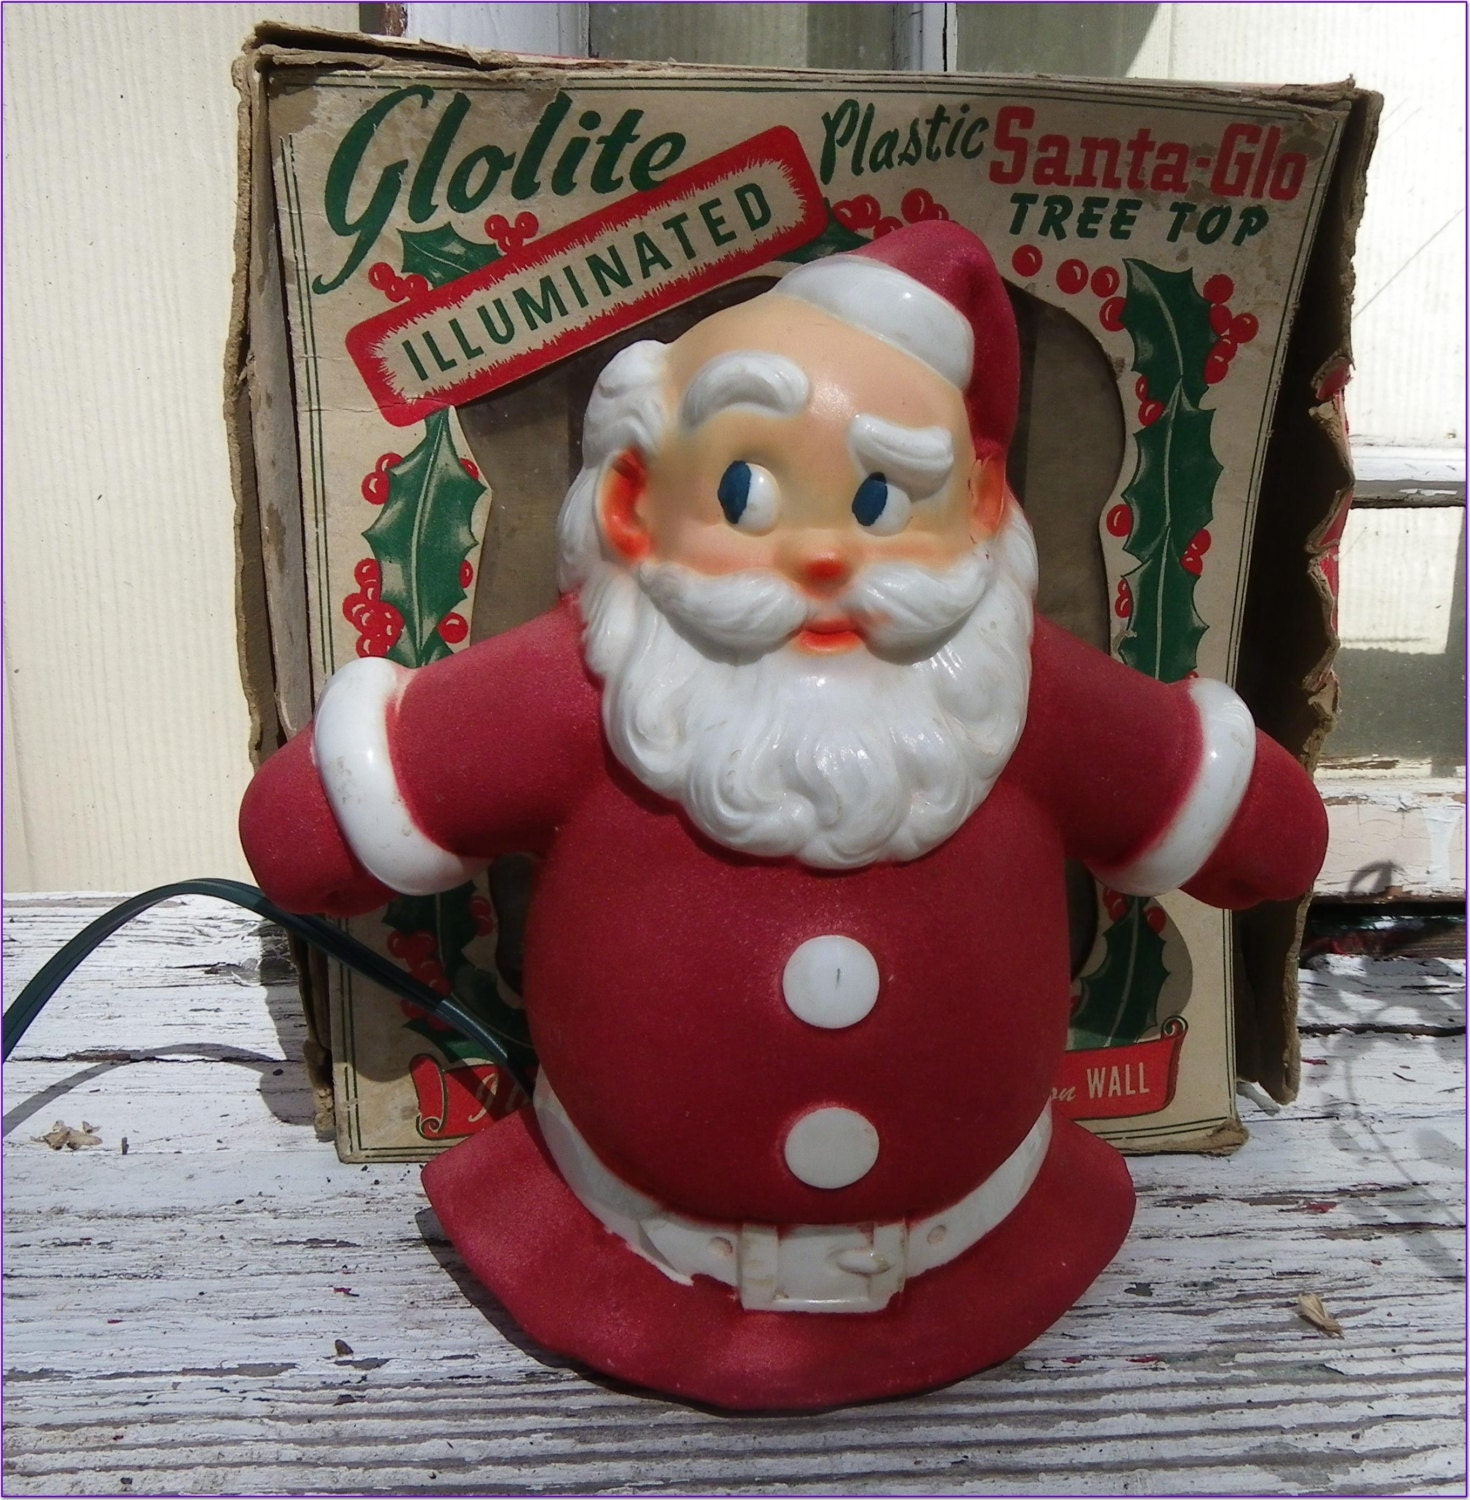 Glolite Santa Glo Tree Topper Window Sitter Light Original